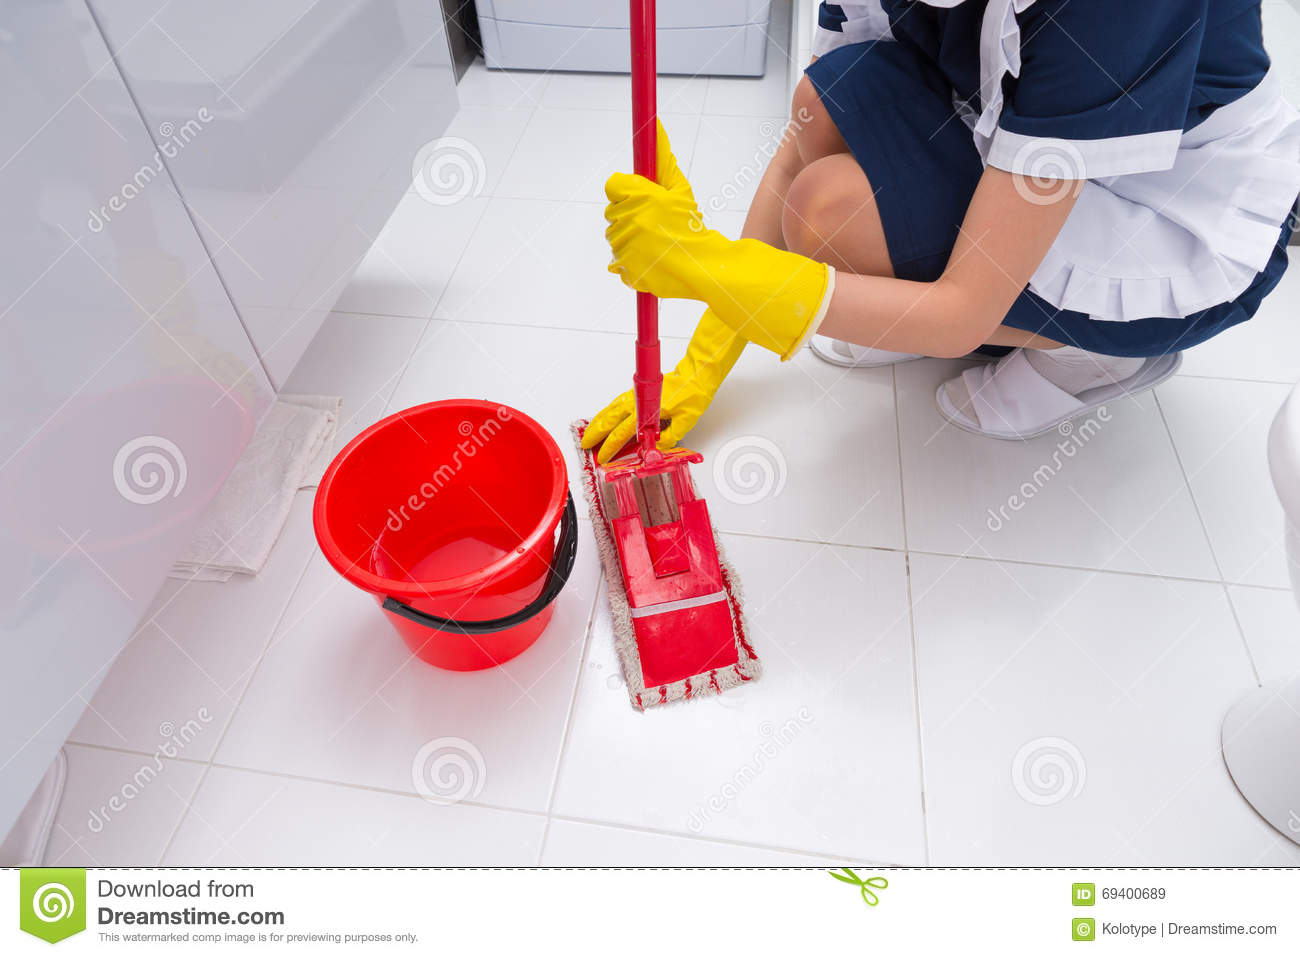 Housekeeper Fitting A Clean Cloth To A Mop Stock Image